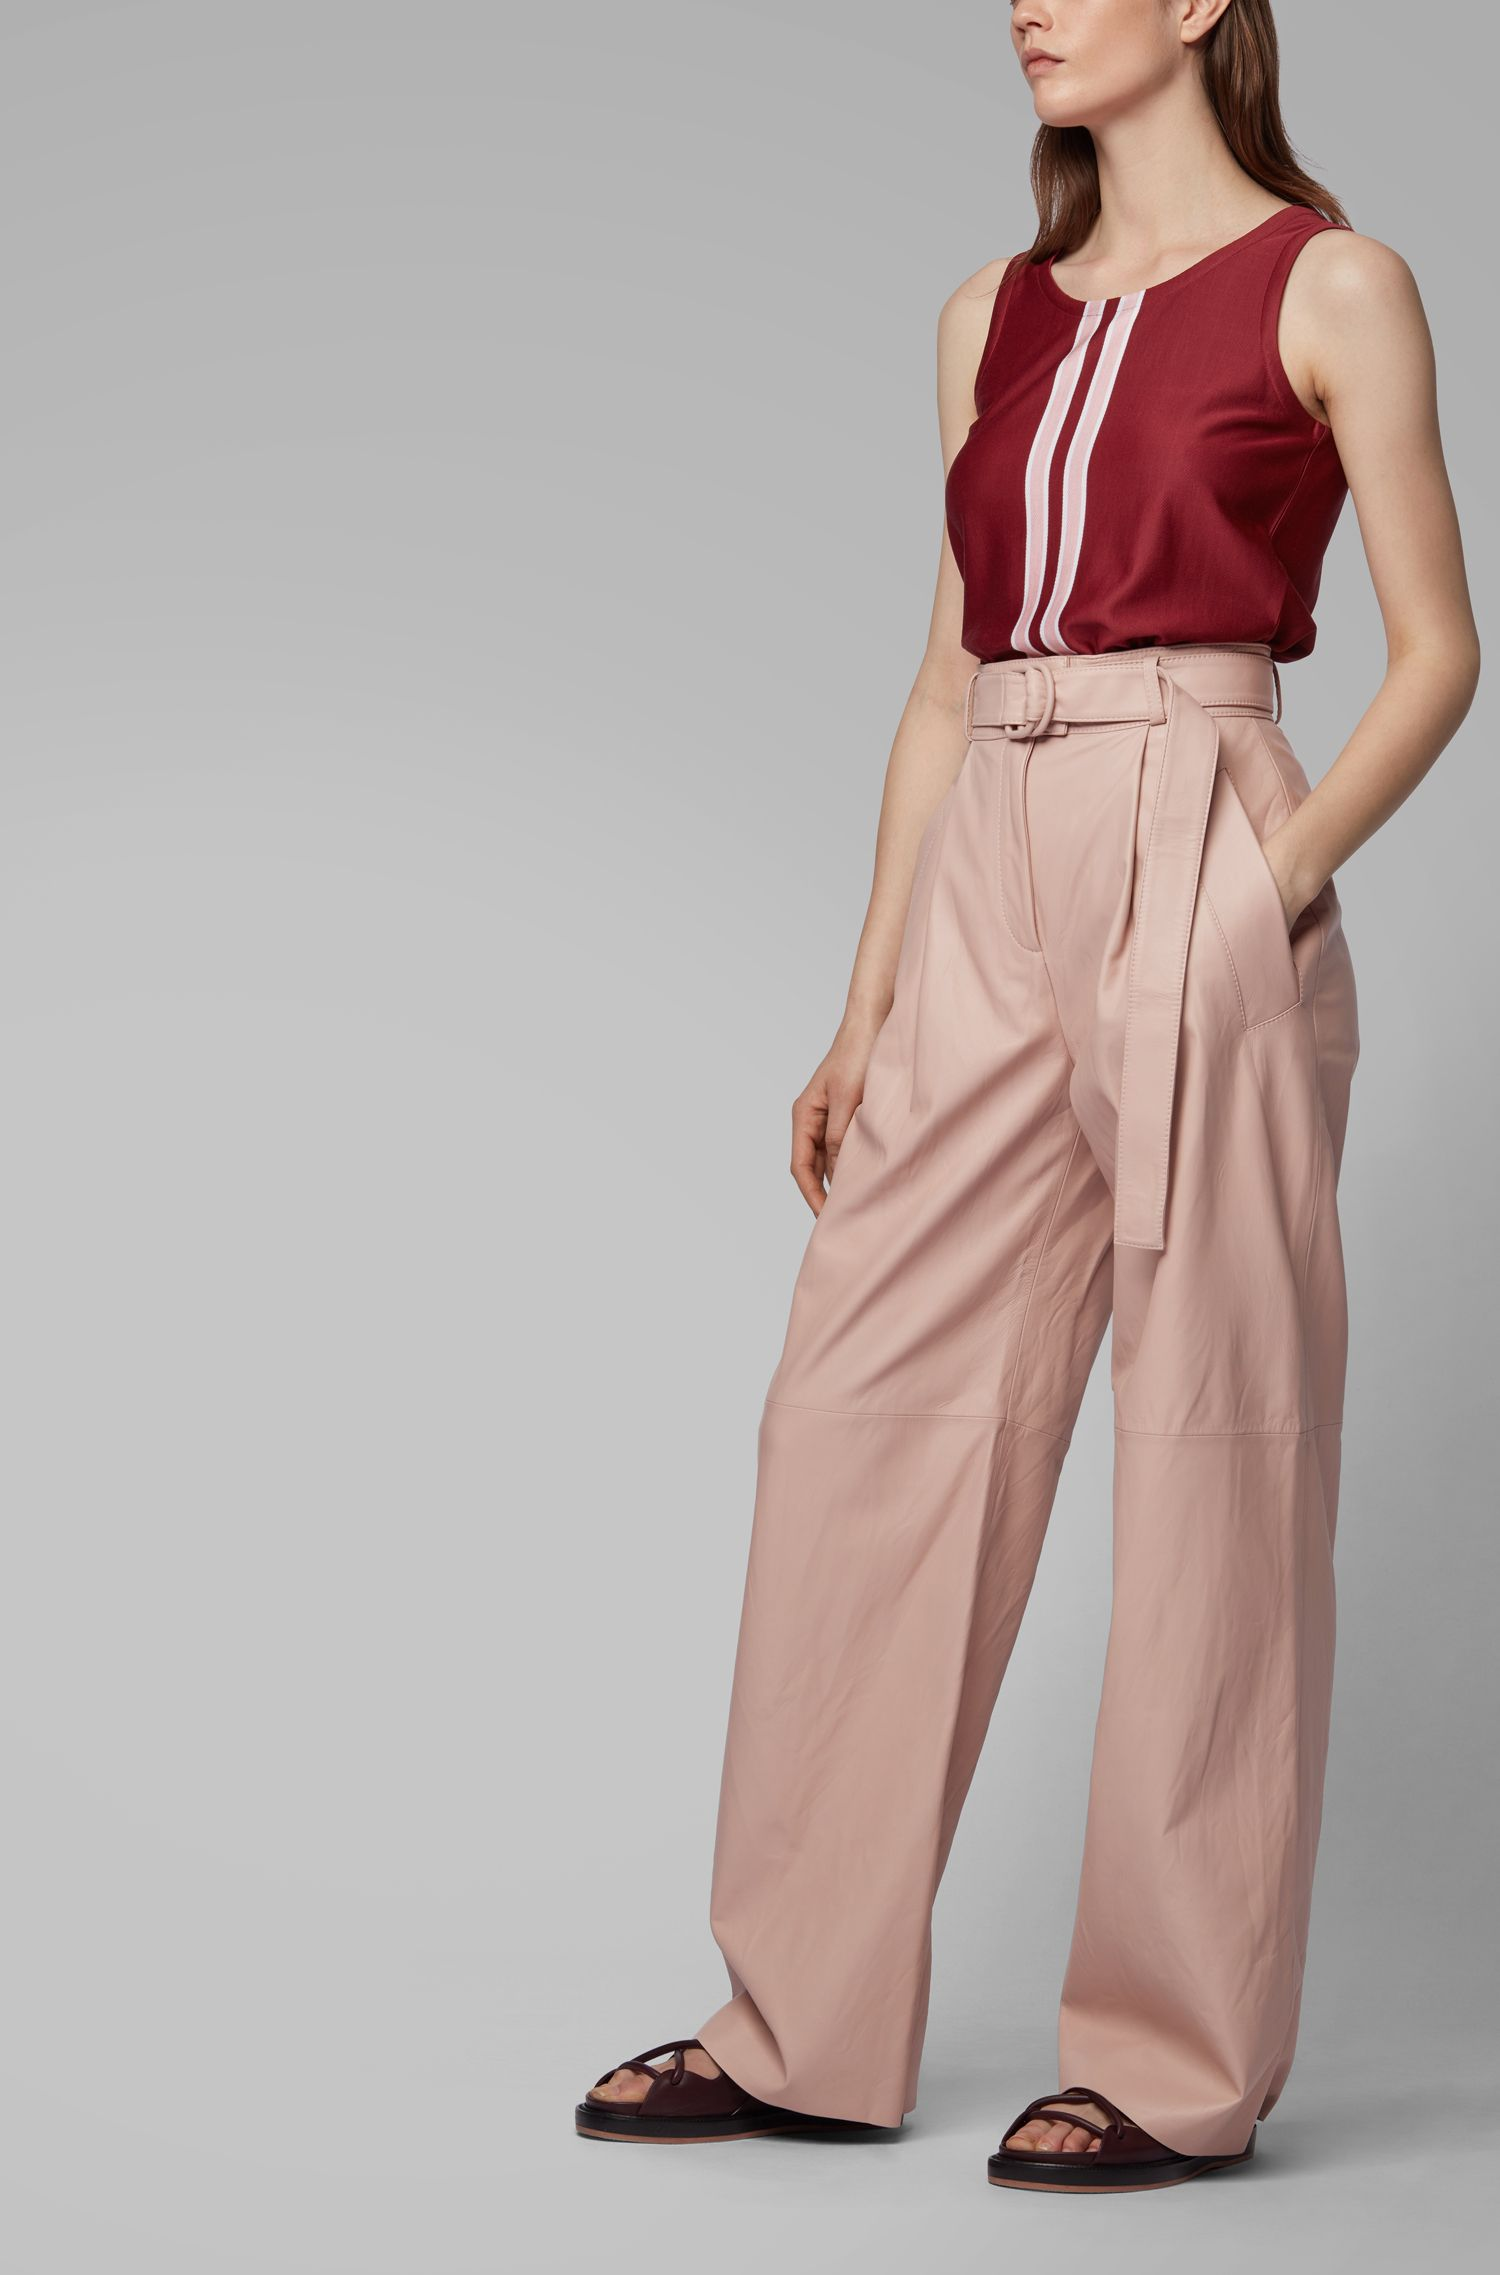 Fashion Show relaxed-fit long-length trousers in nappa leather, light pink